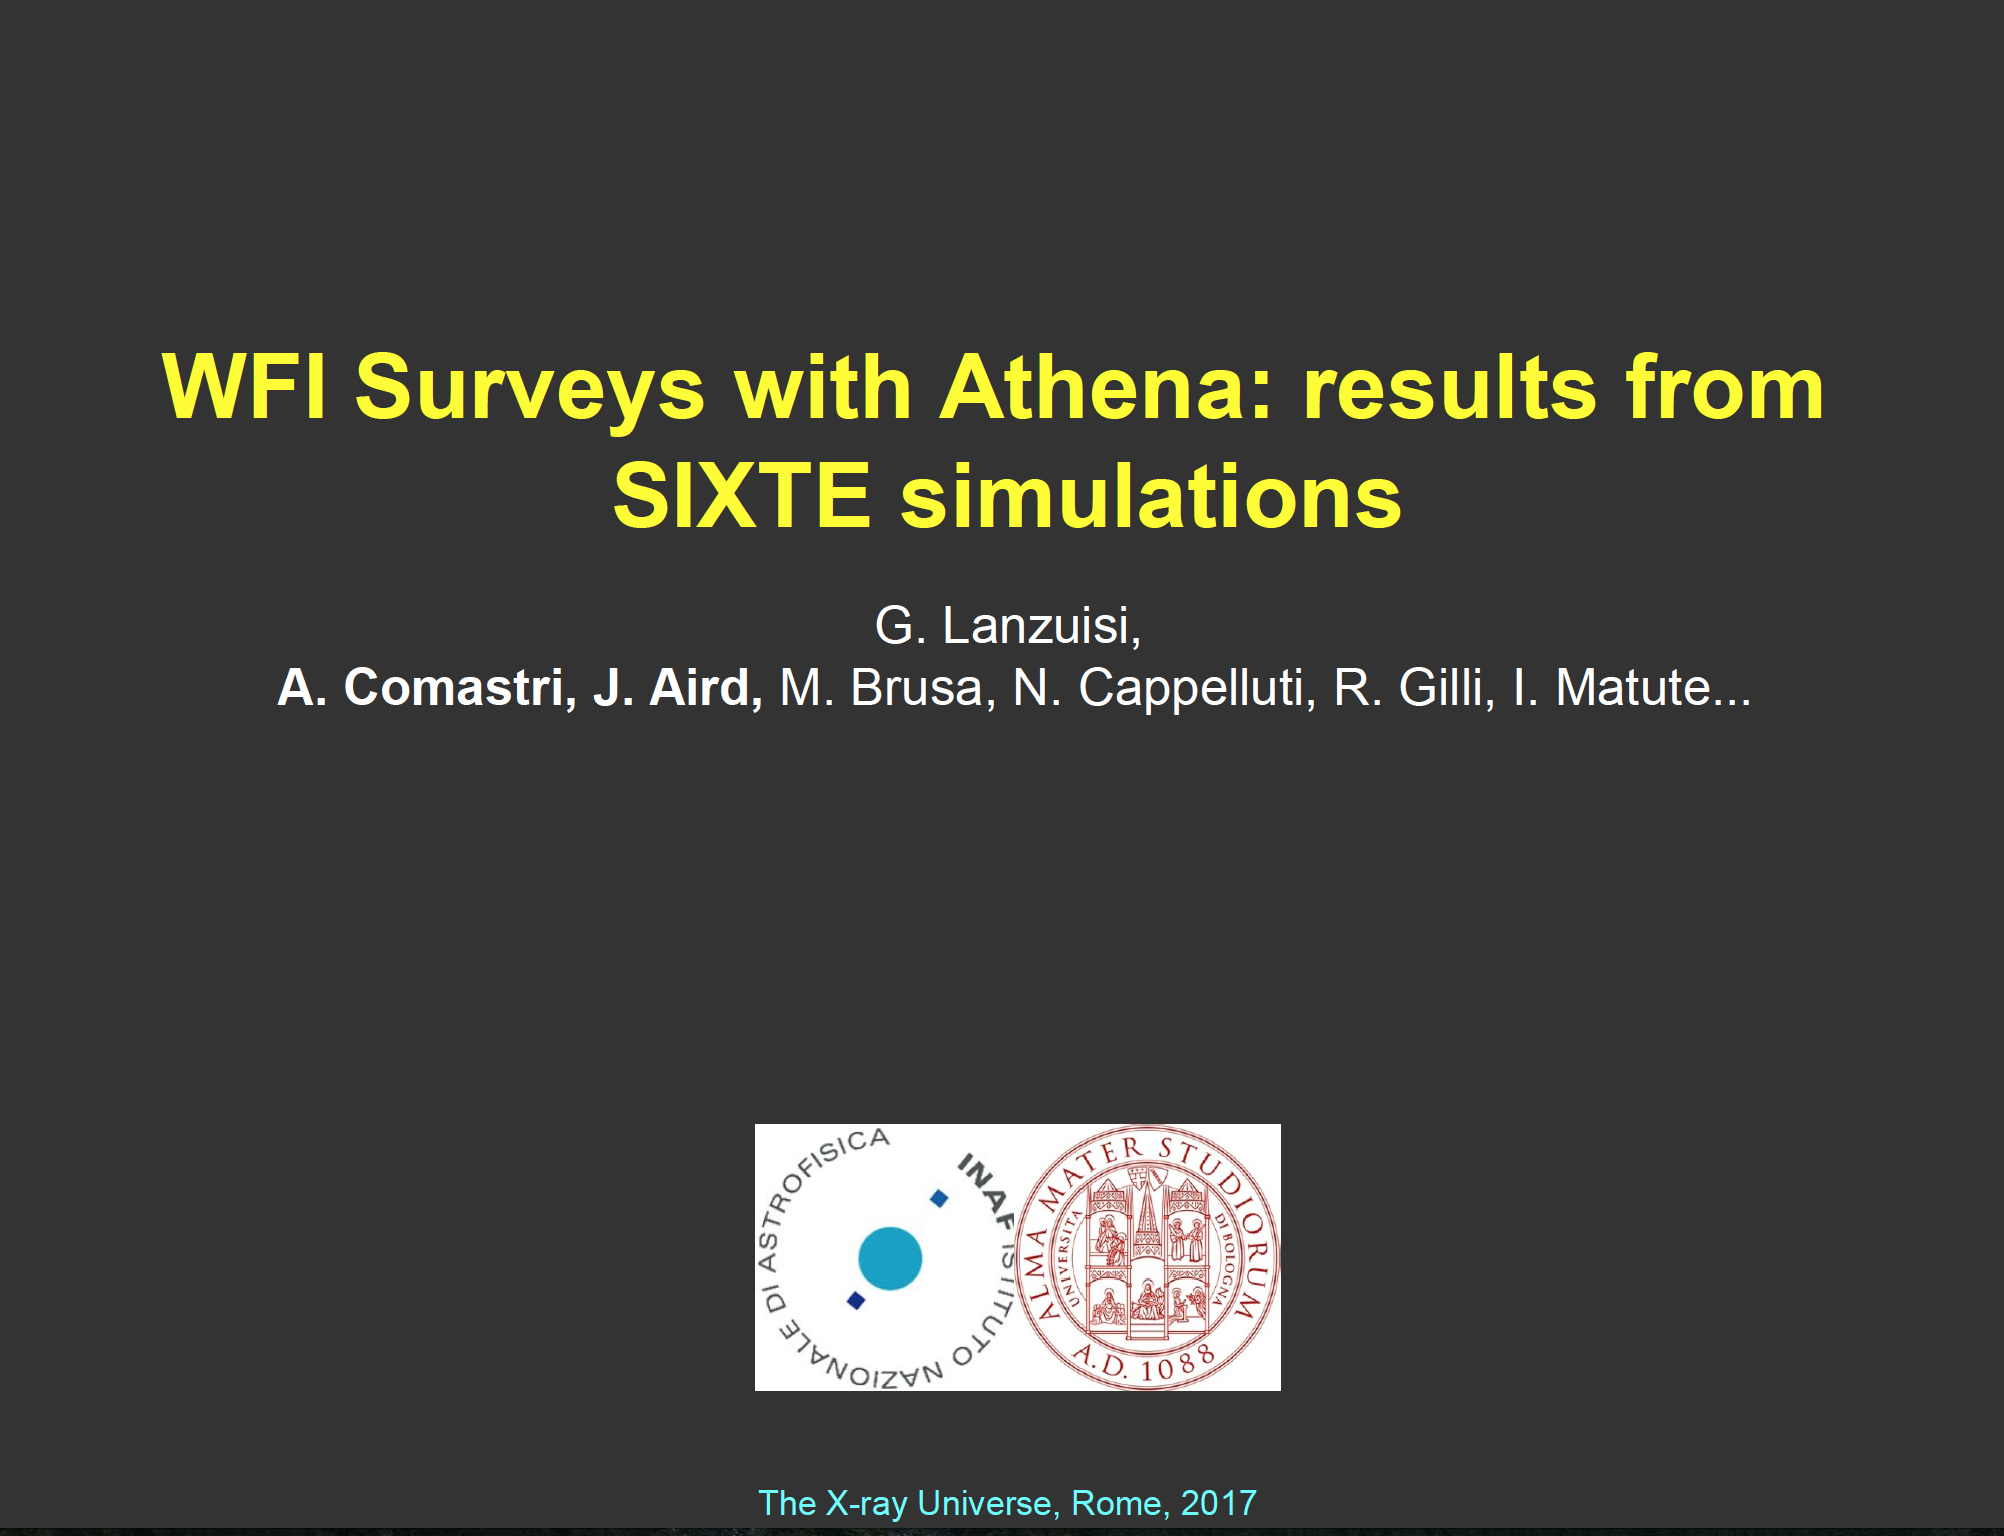 WFI Surveys with Athena: results from SIXTE simulations